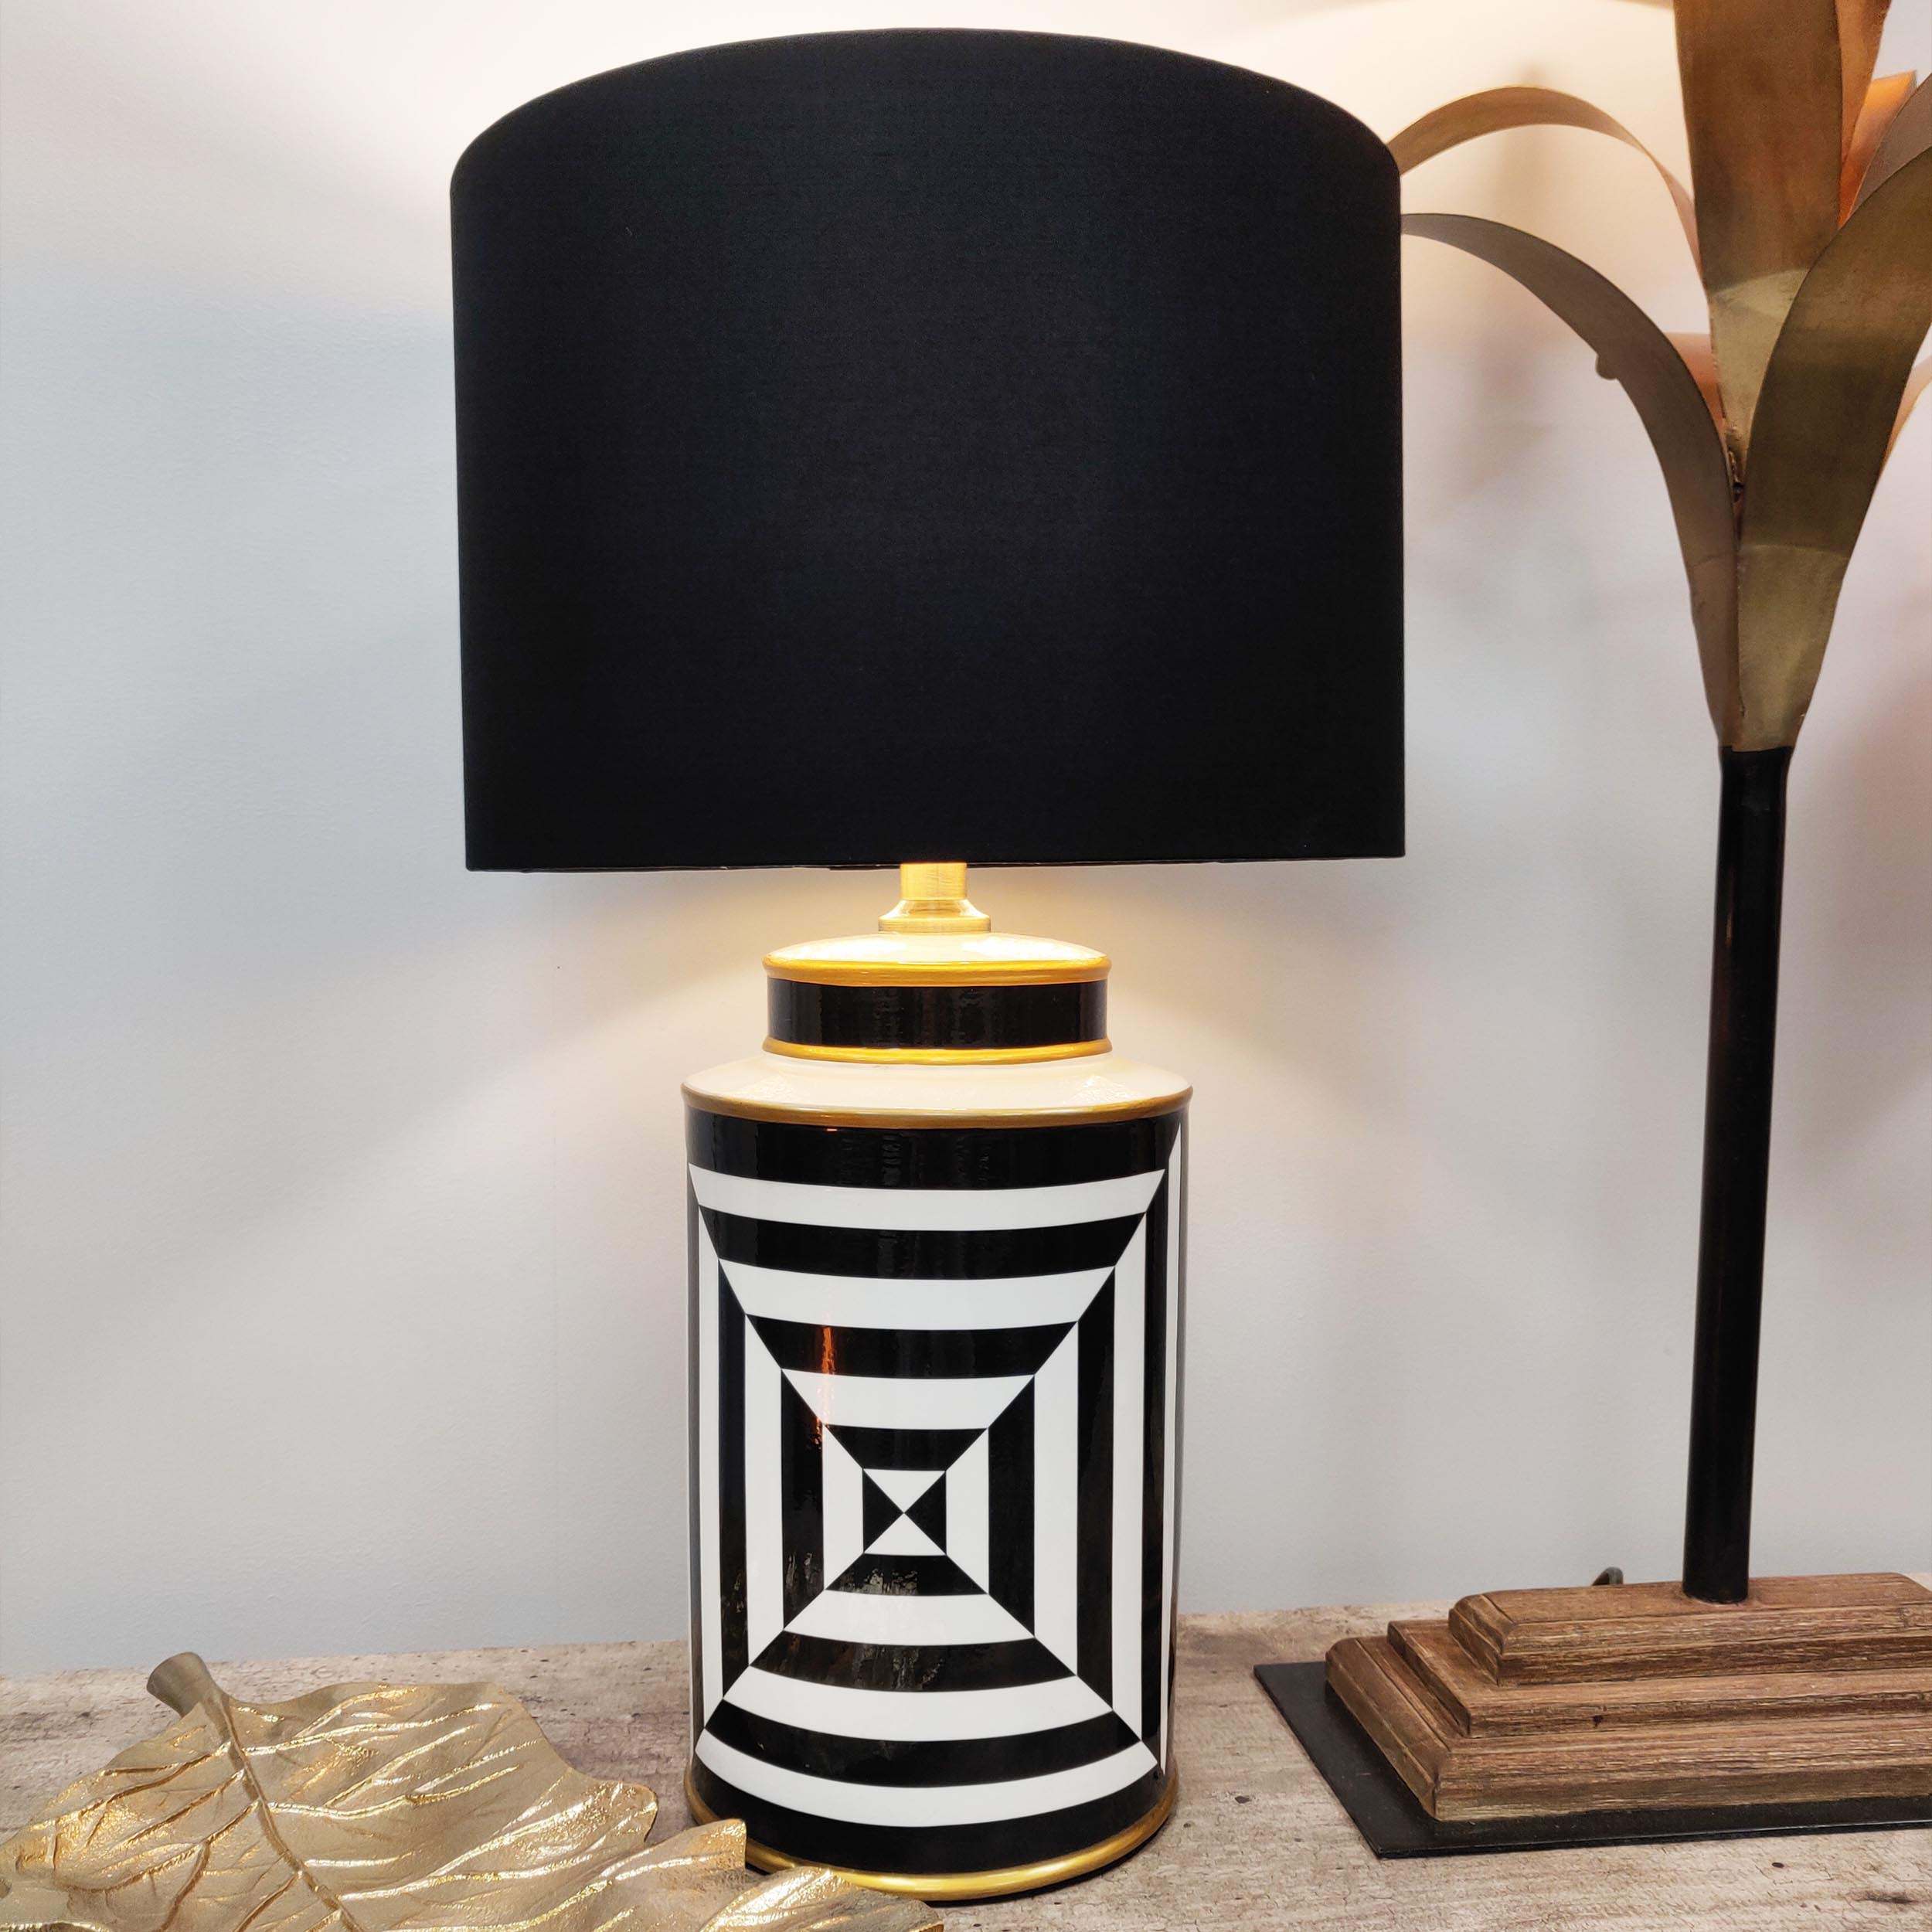 Geometric Black and White Table Lamp